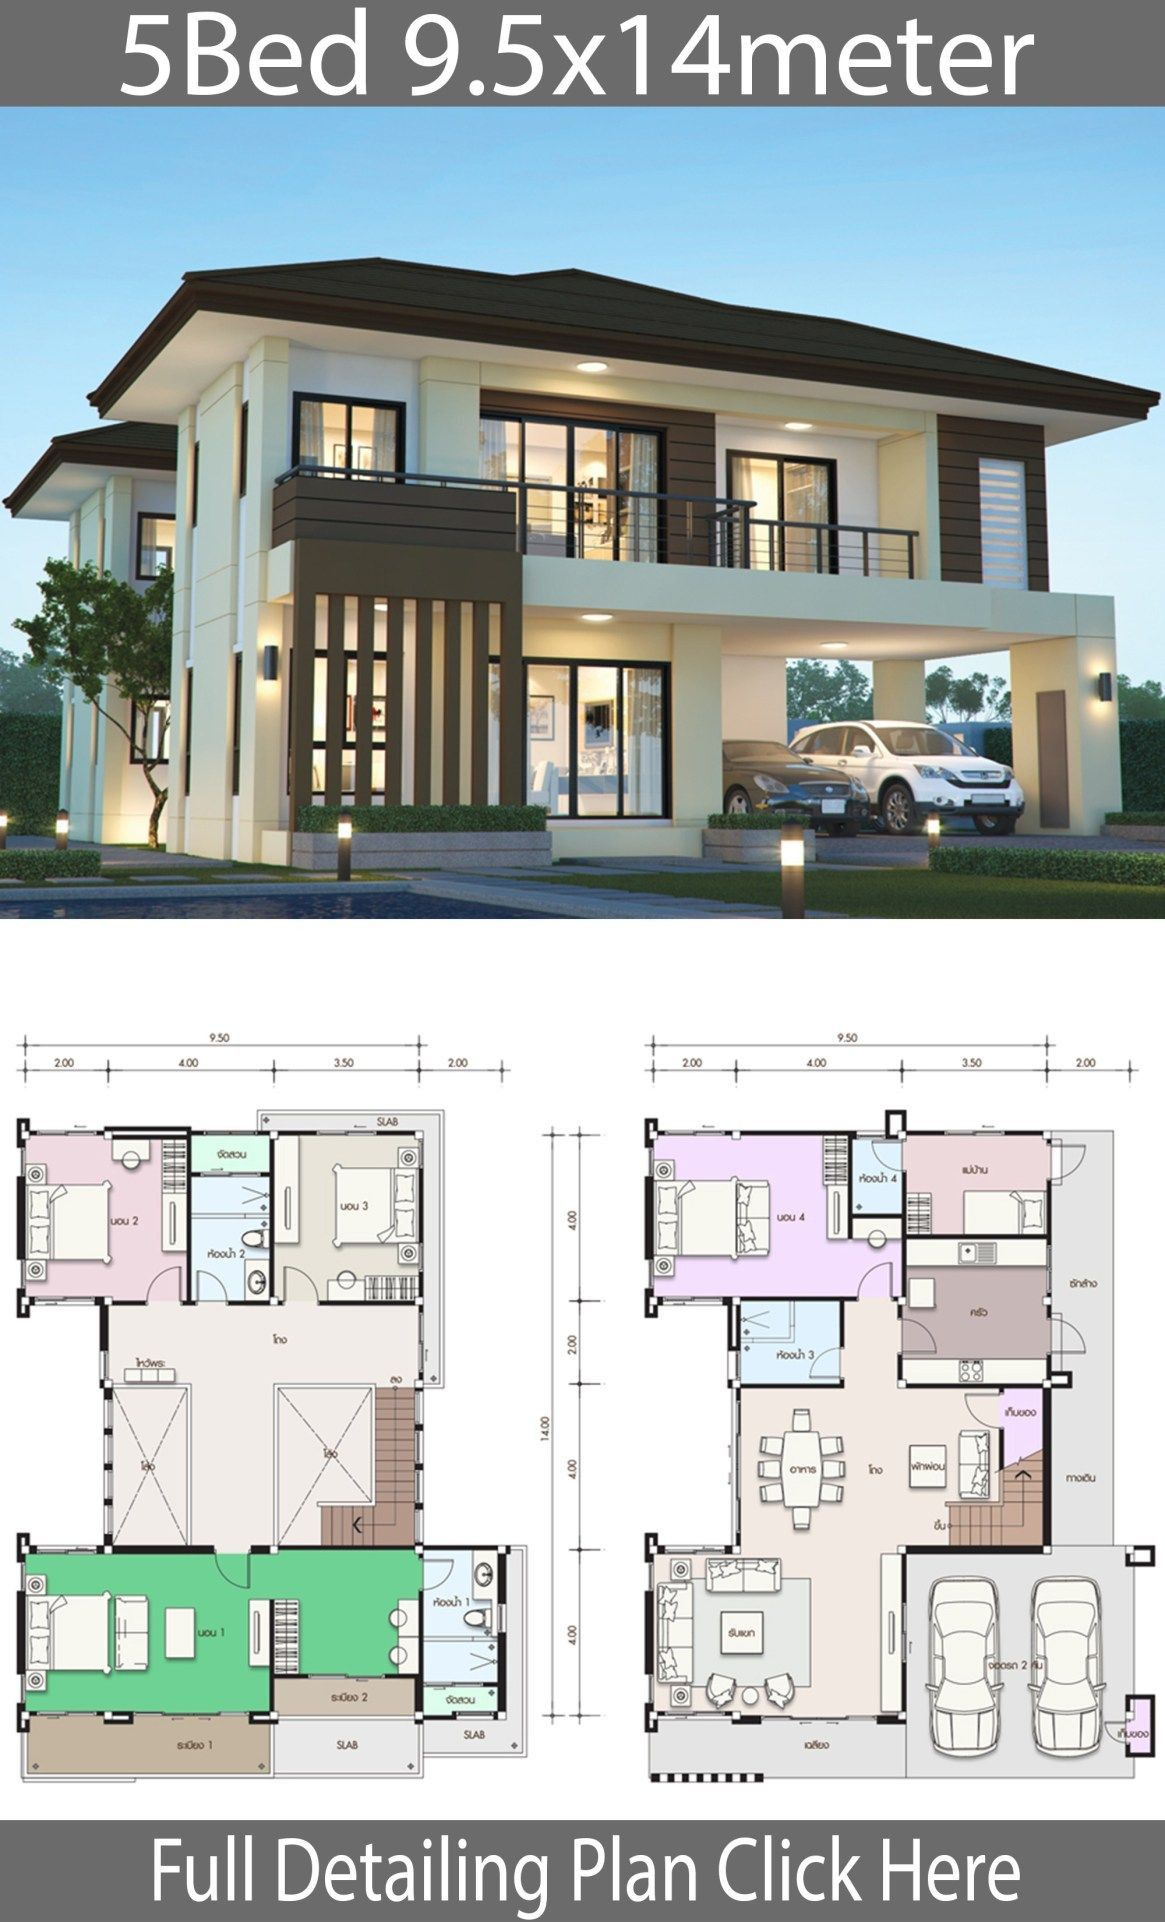 House Design Plan 9 5x14m With 5 Bedrooms Dengan Gambar In 2020 2 Storey House Design Affordable House Plans House Architecture Design